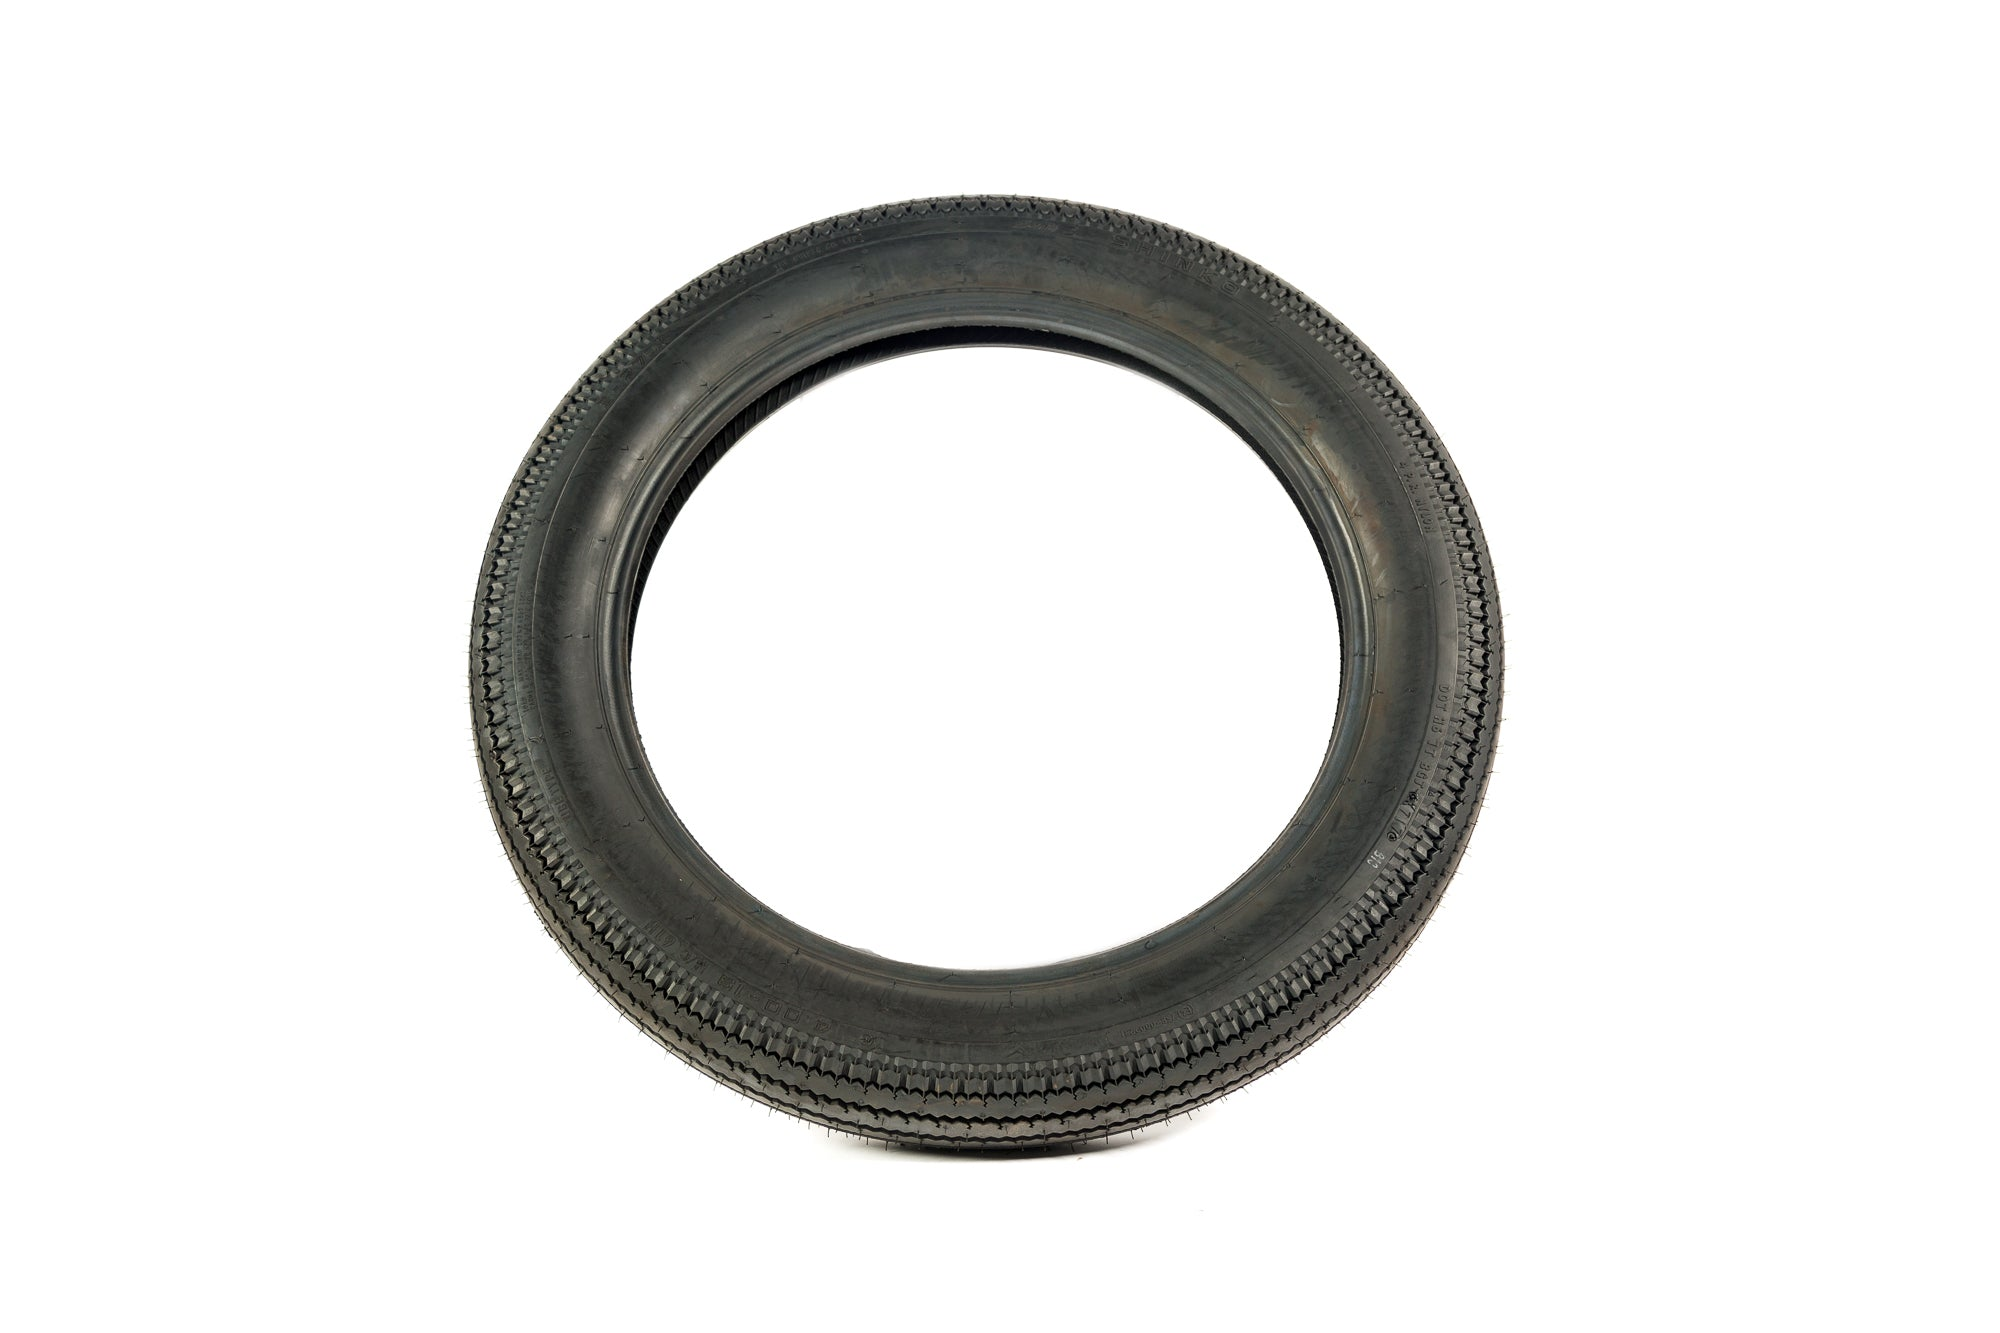 "19"" Front Tire - Shinko - MC Parts - Prism Supply"